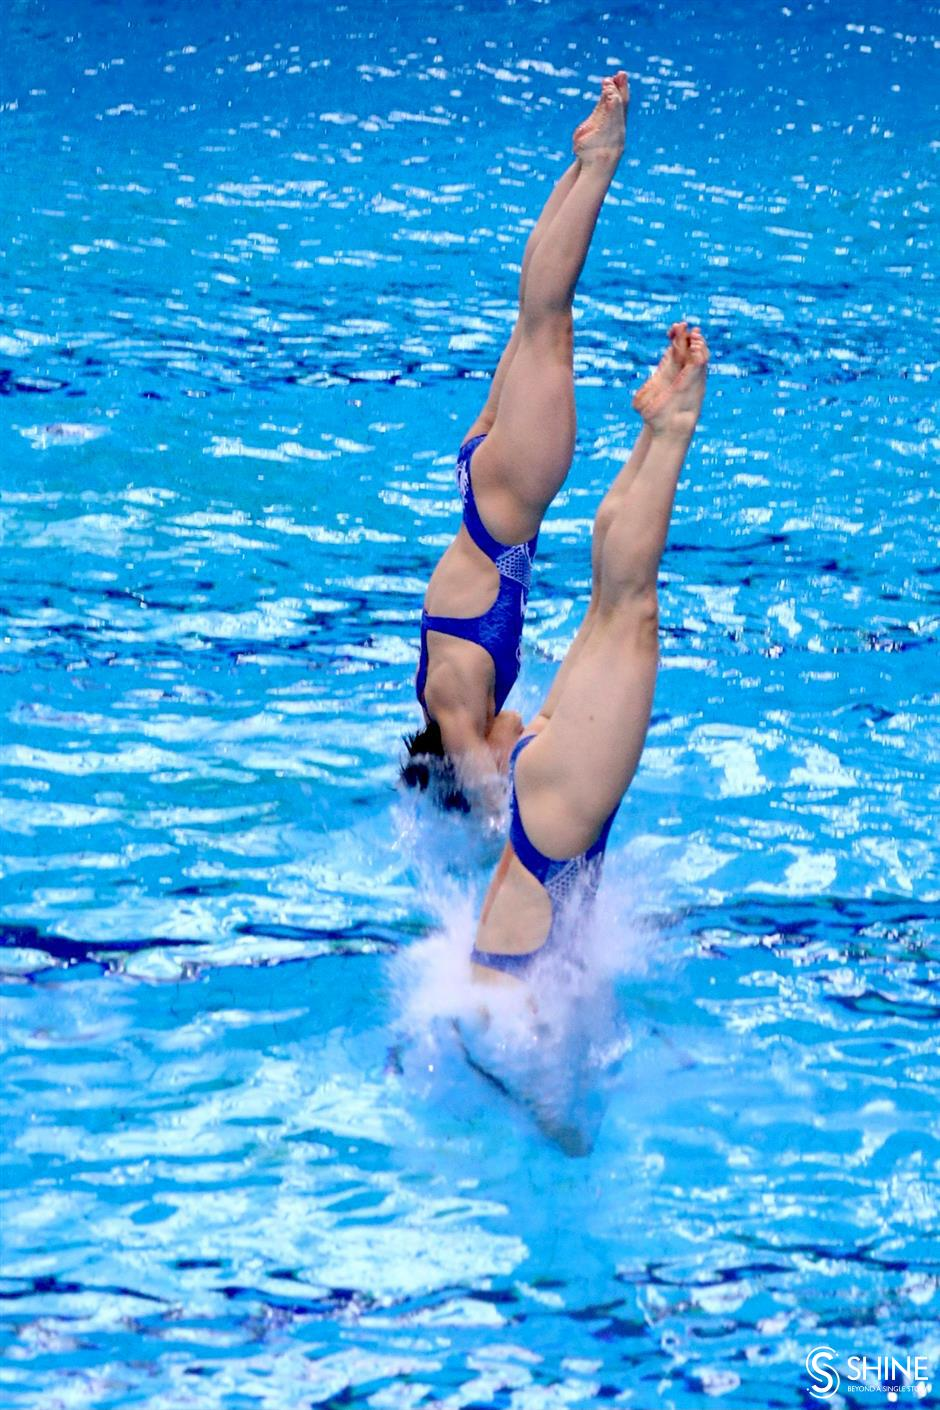 National divers making a splash in Pudong